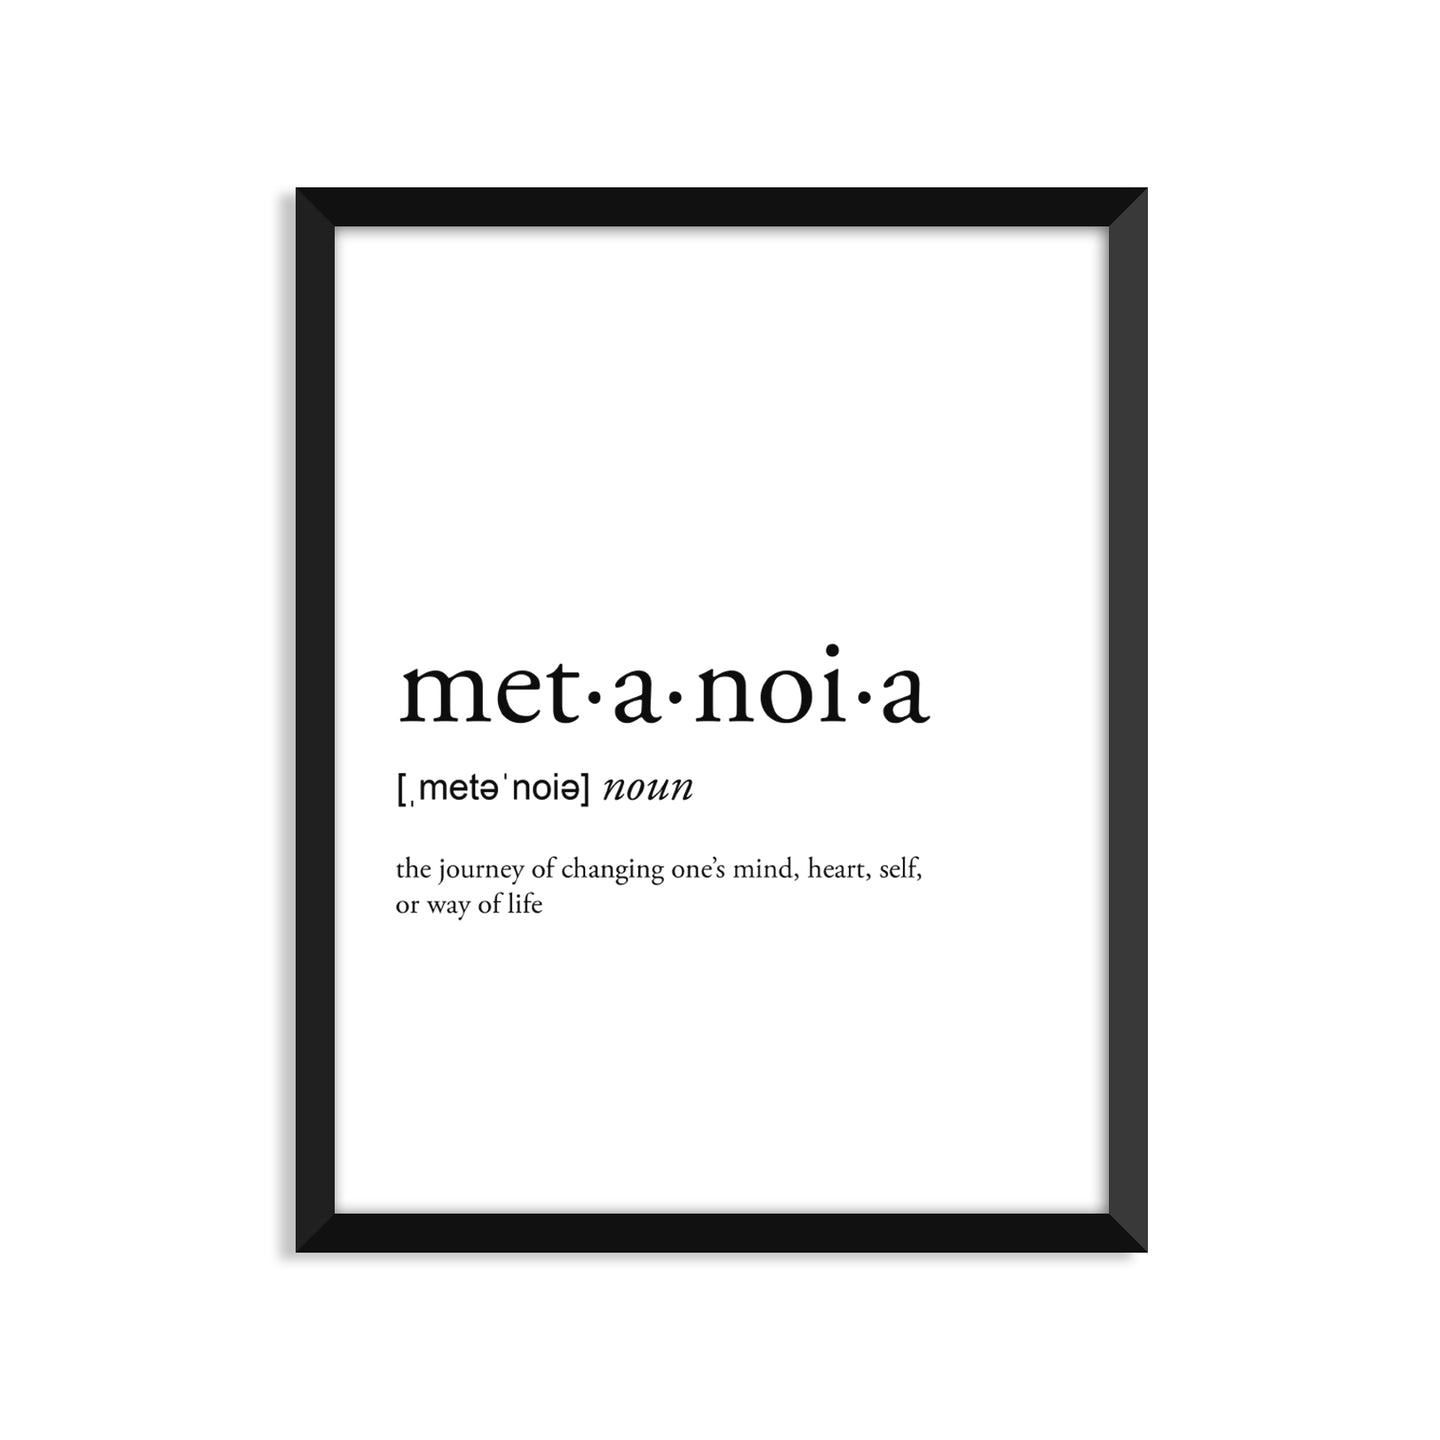 Metanoia Definition - Unframed Art Print Or Greeting Card